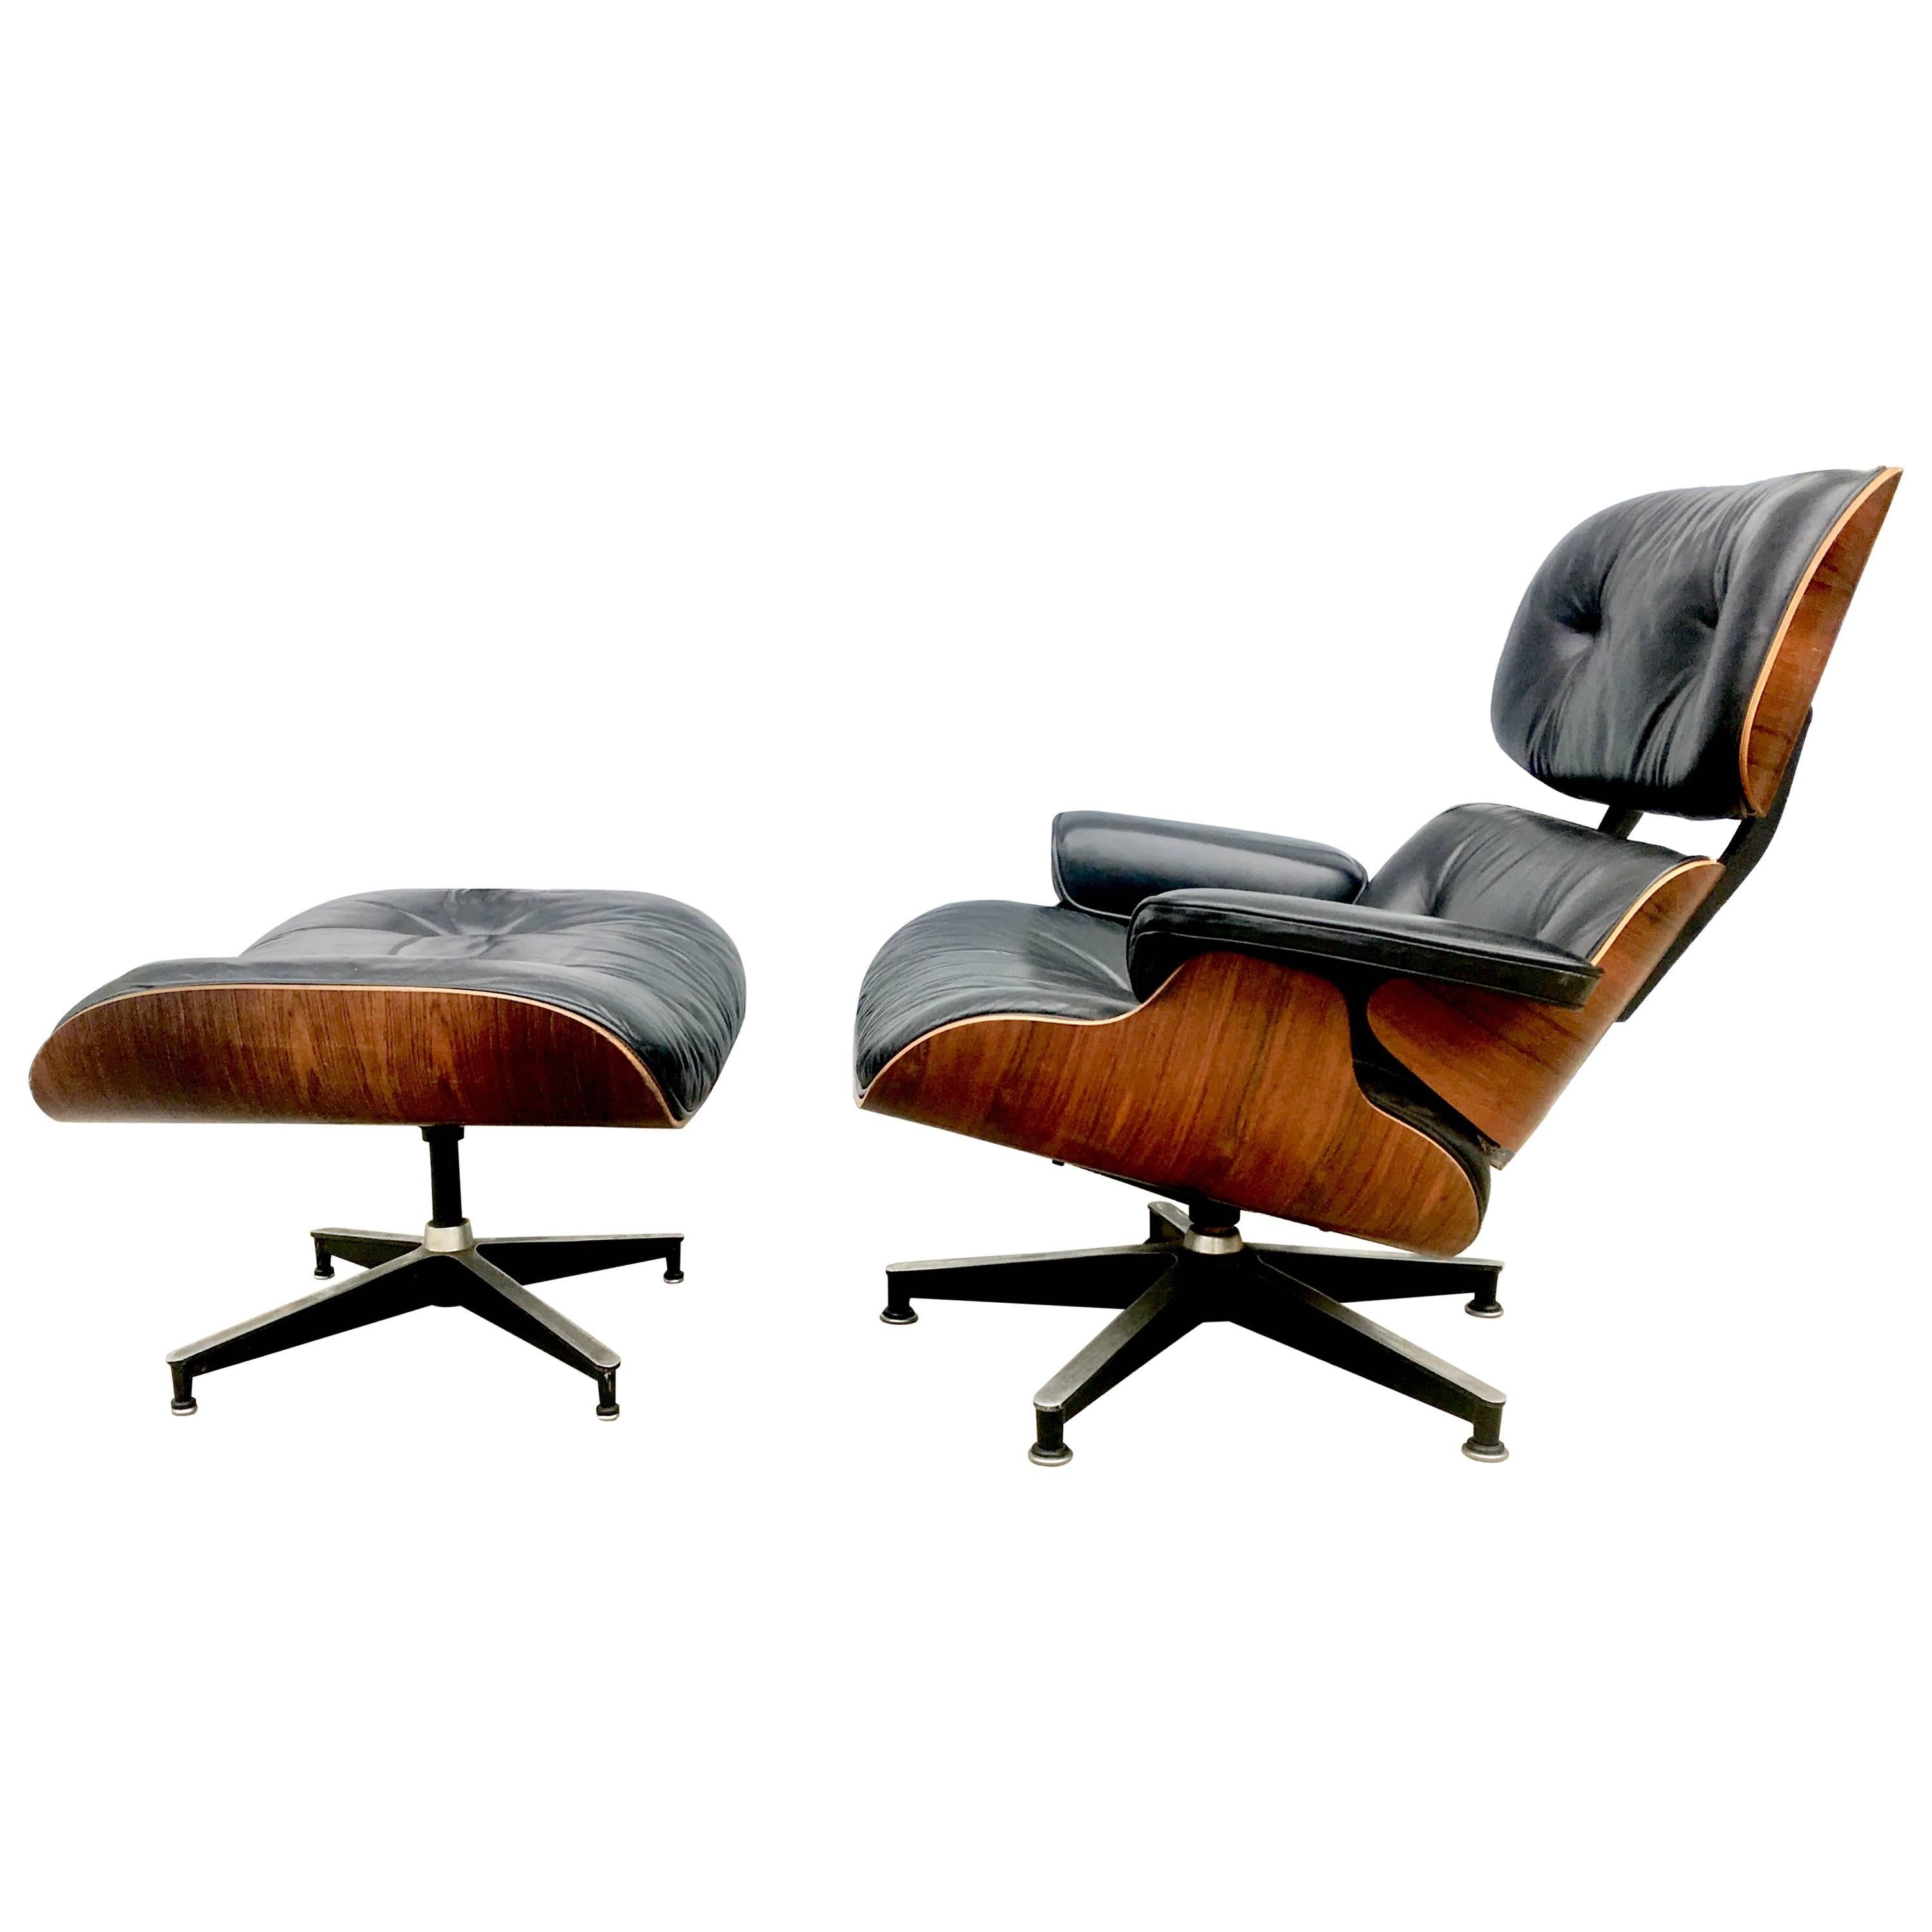 Stunning Herman Miller Eames Lounge Chair And Ottoman